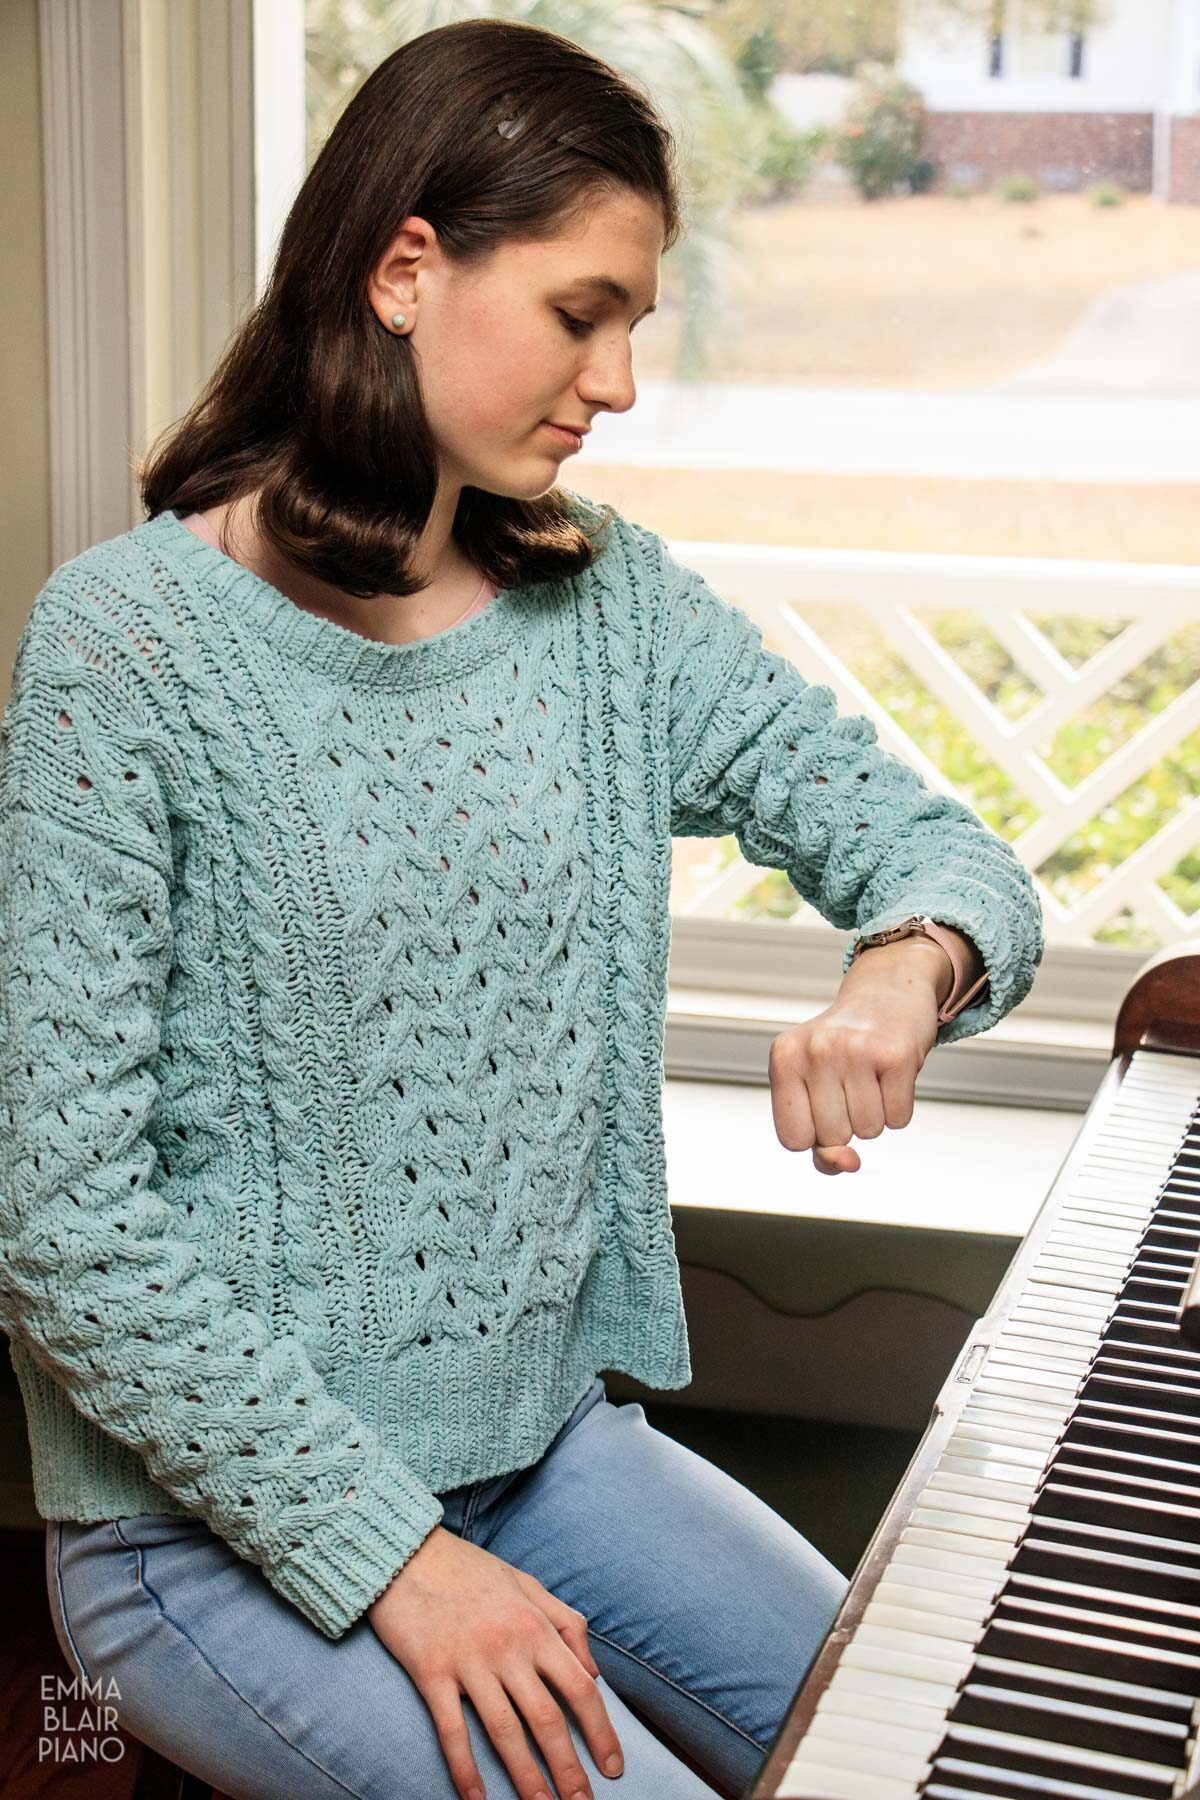 teenage girl checking her watch as she sits at the piano